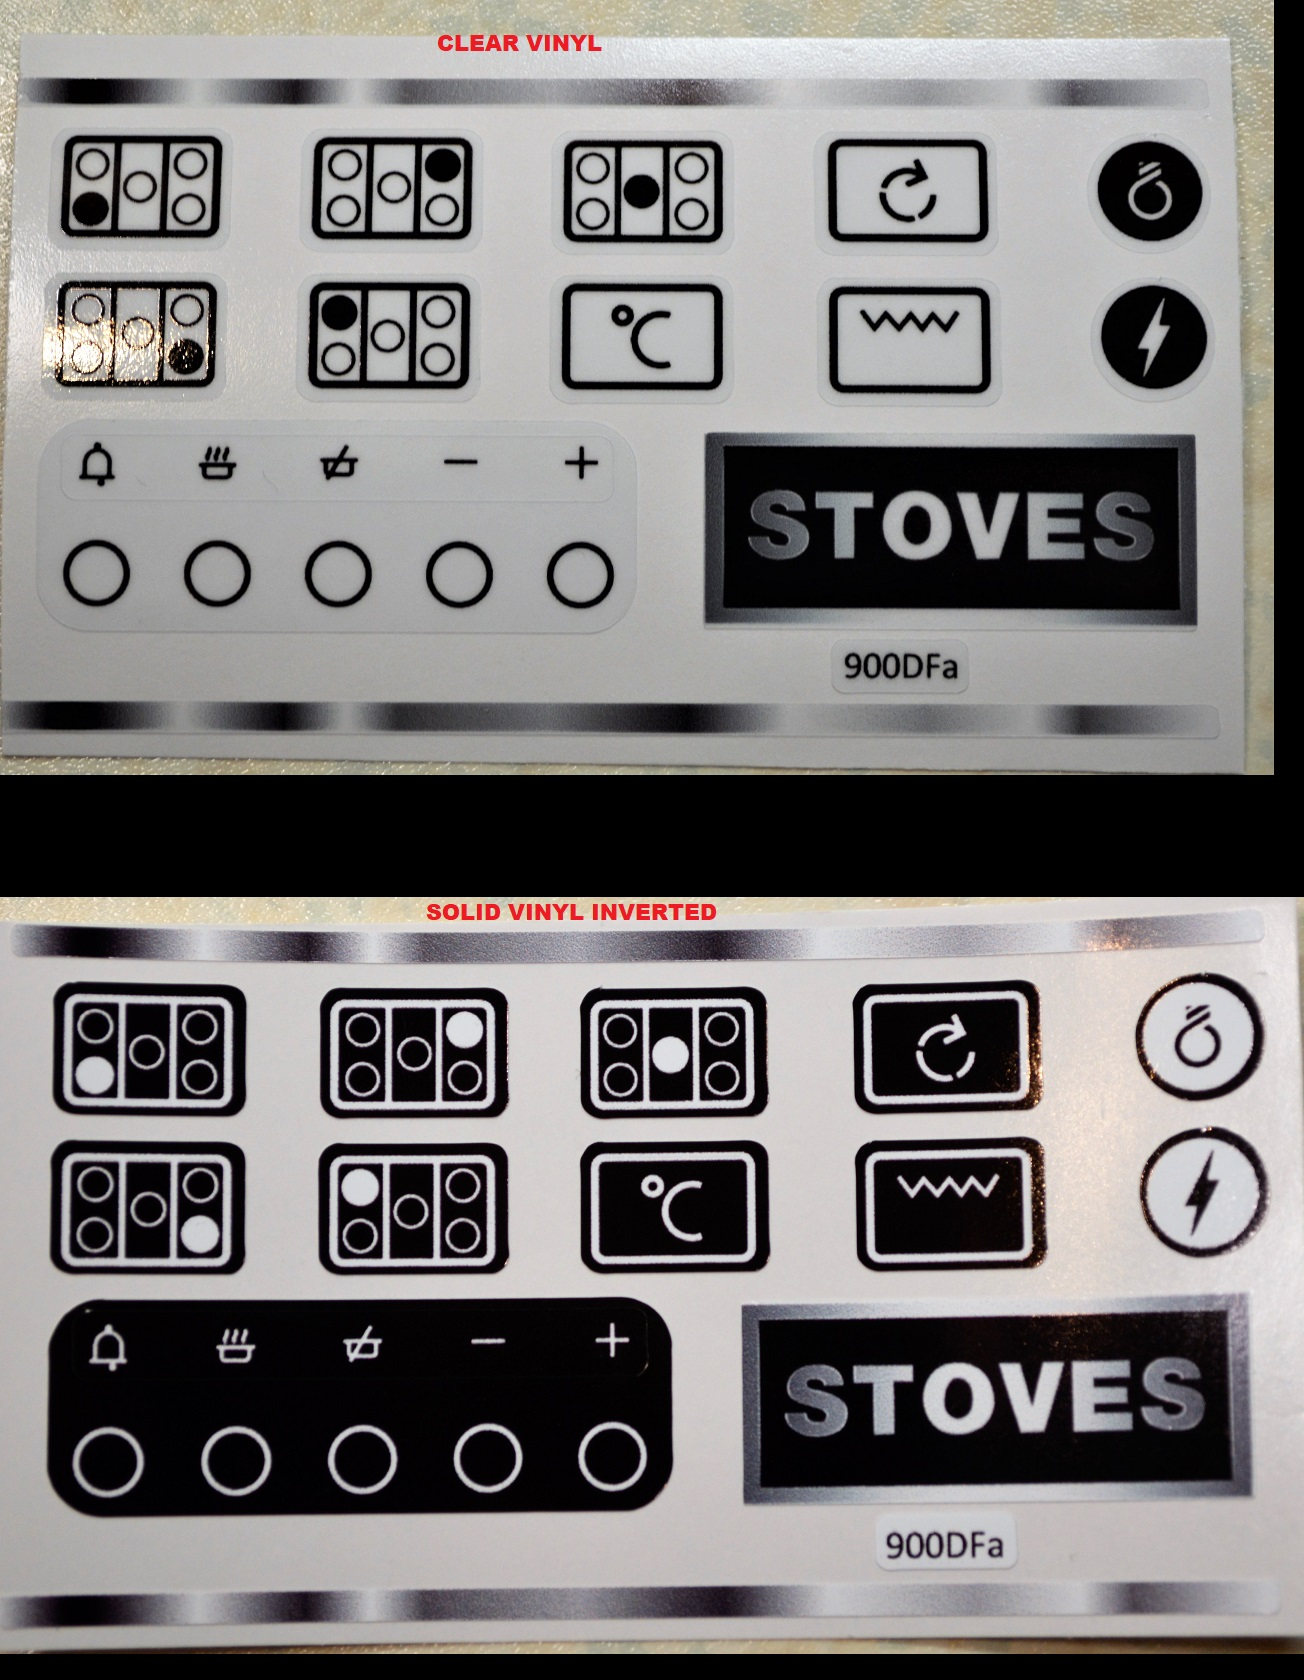 Stoves 900DFa Hob indicator and clock stickers in clear or solid